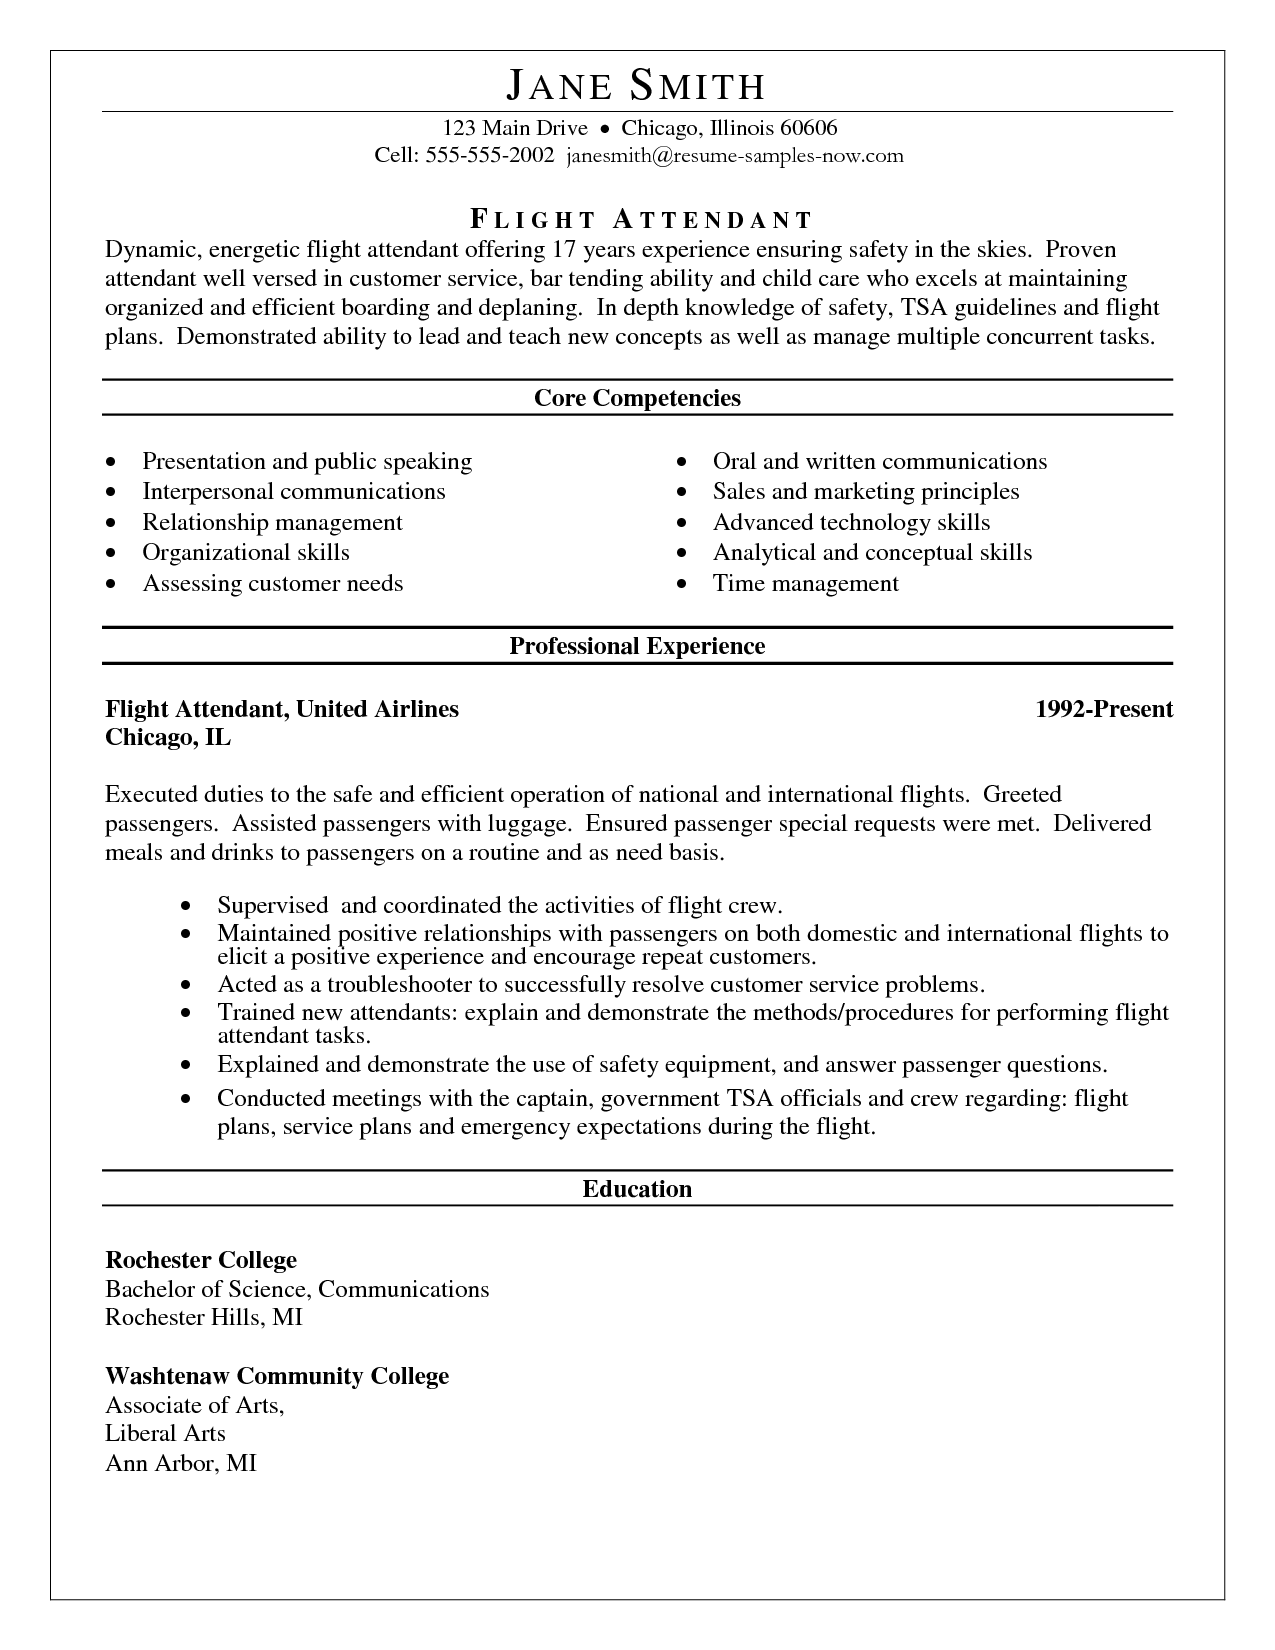 Core Competencies Resume  Resume Template    Resume